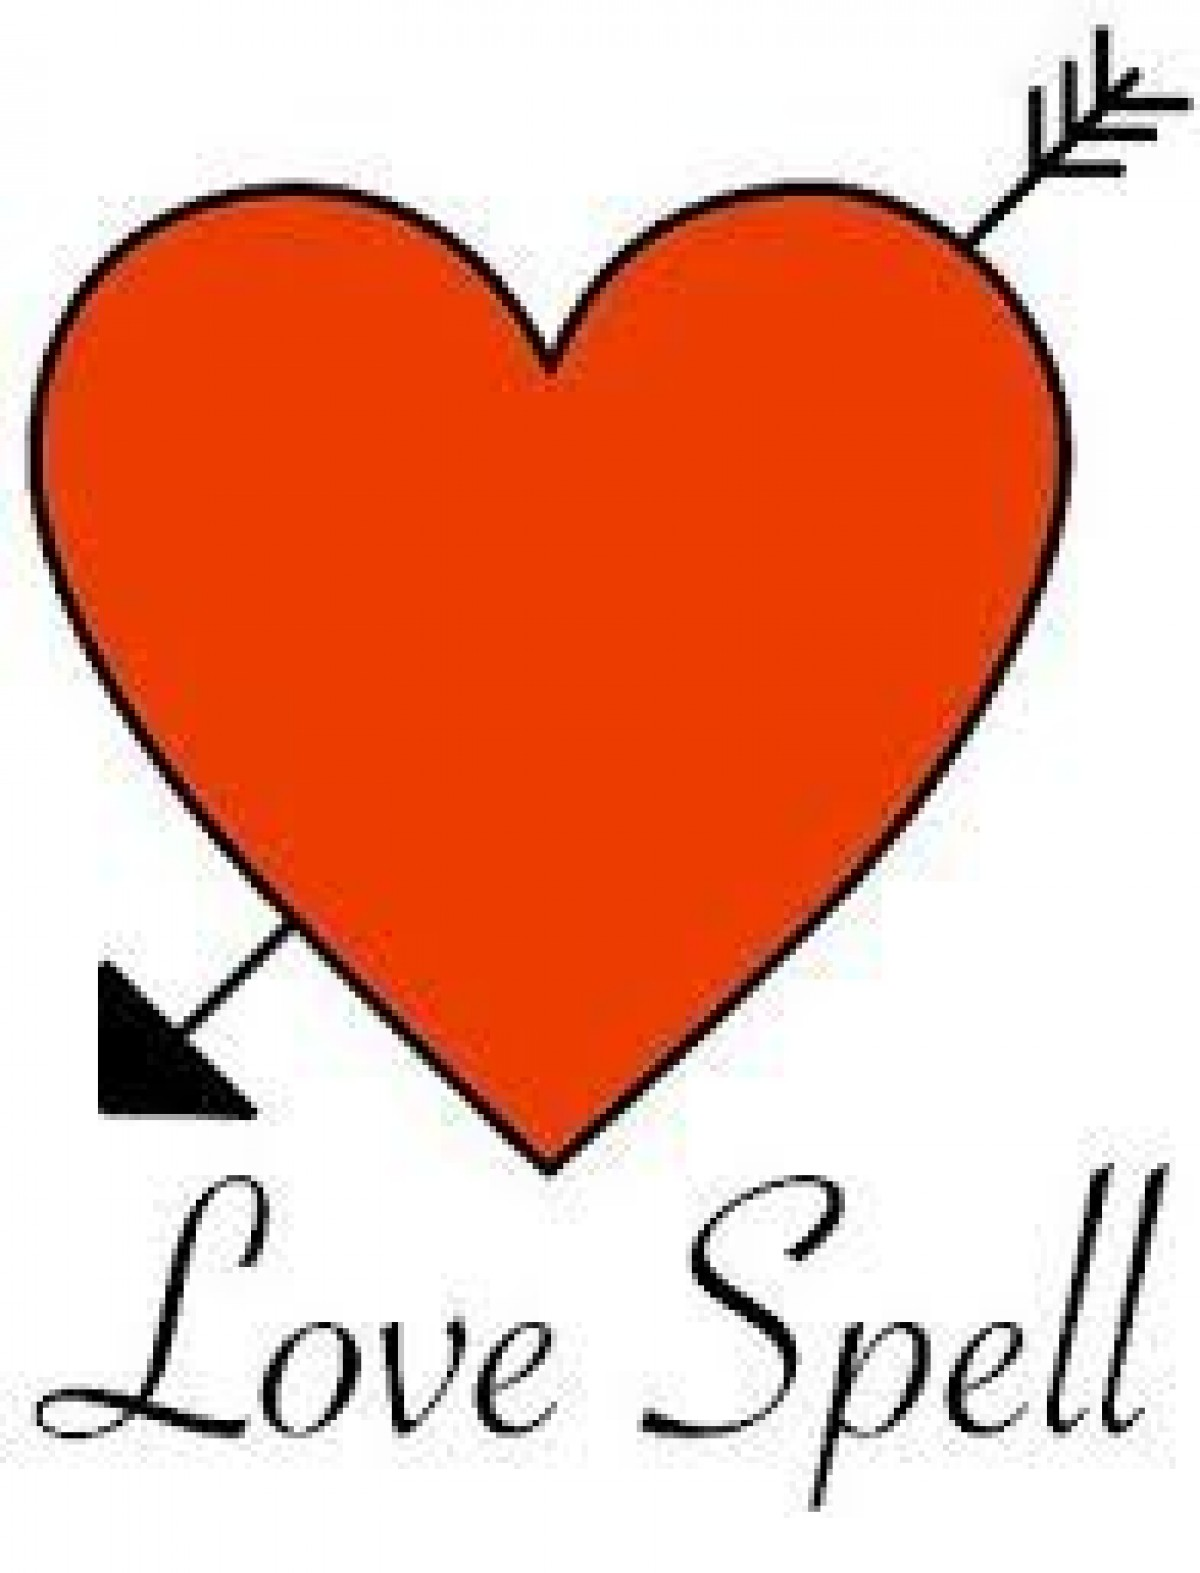 FREE LOVE SPELLS! Call 702-400-6014 - Astrology / Psychics - National